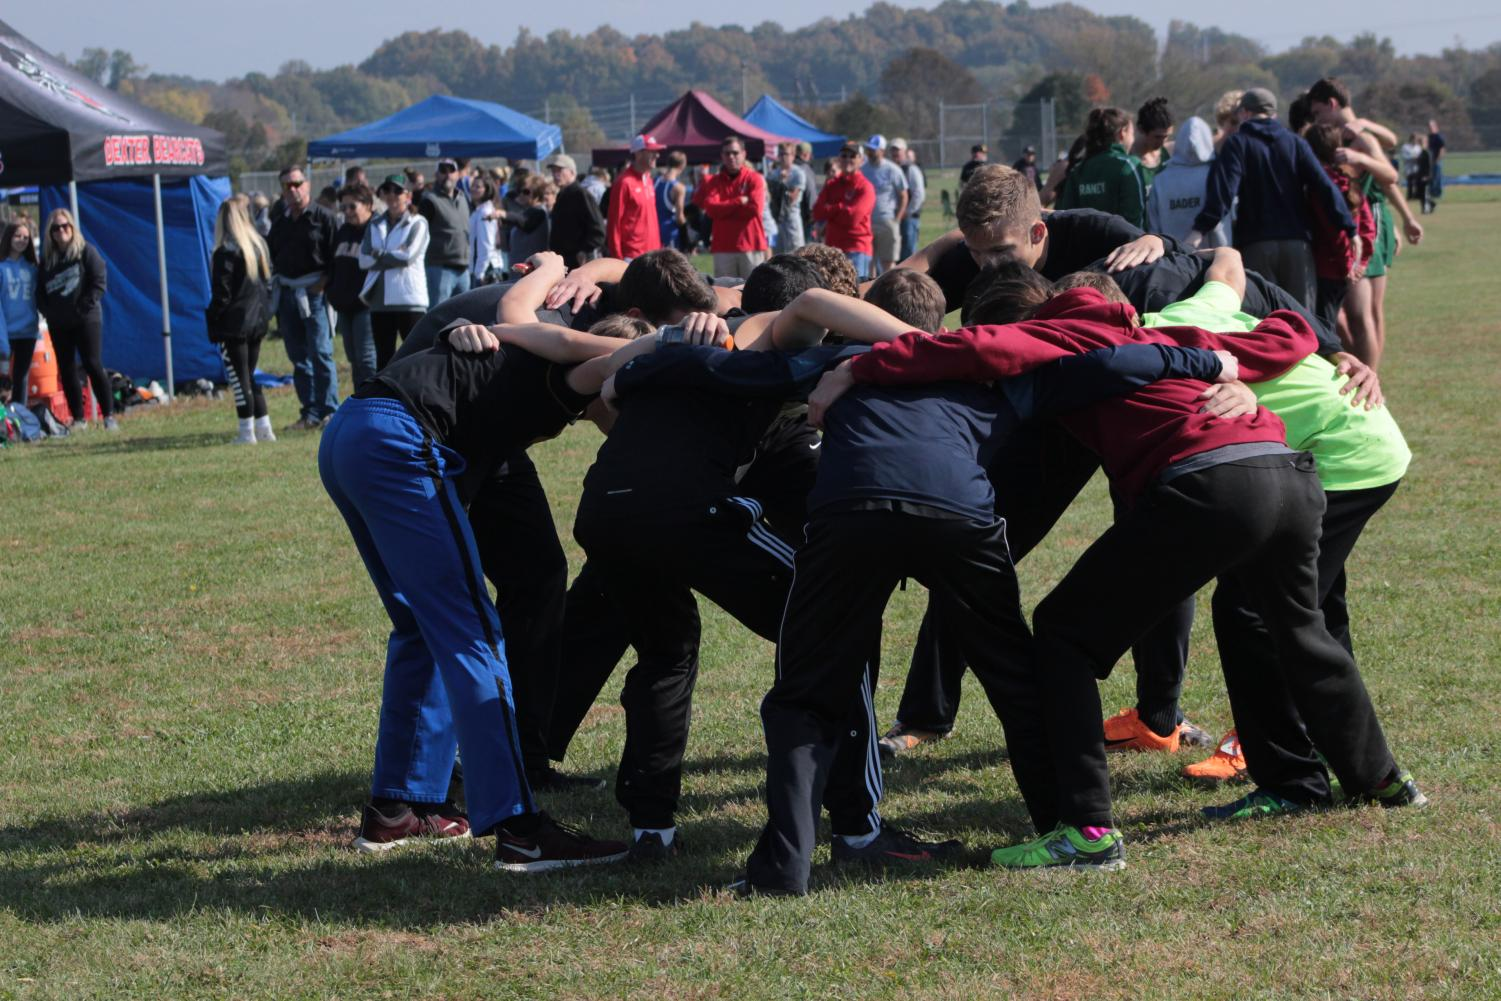 The Cross Country team getting ready for their run